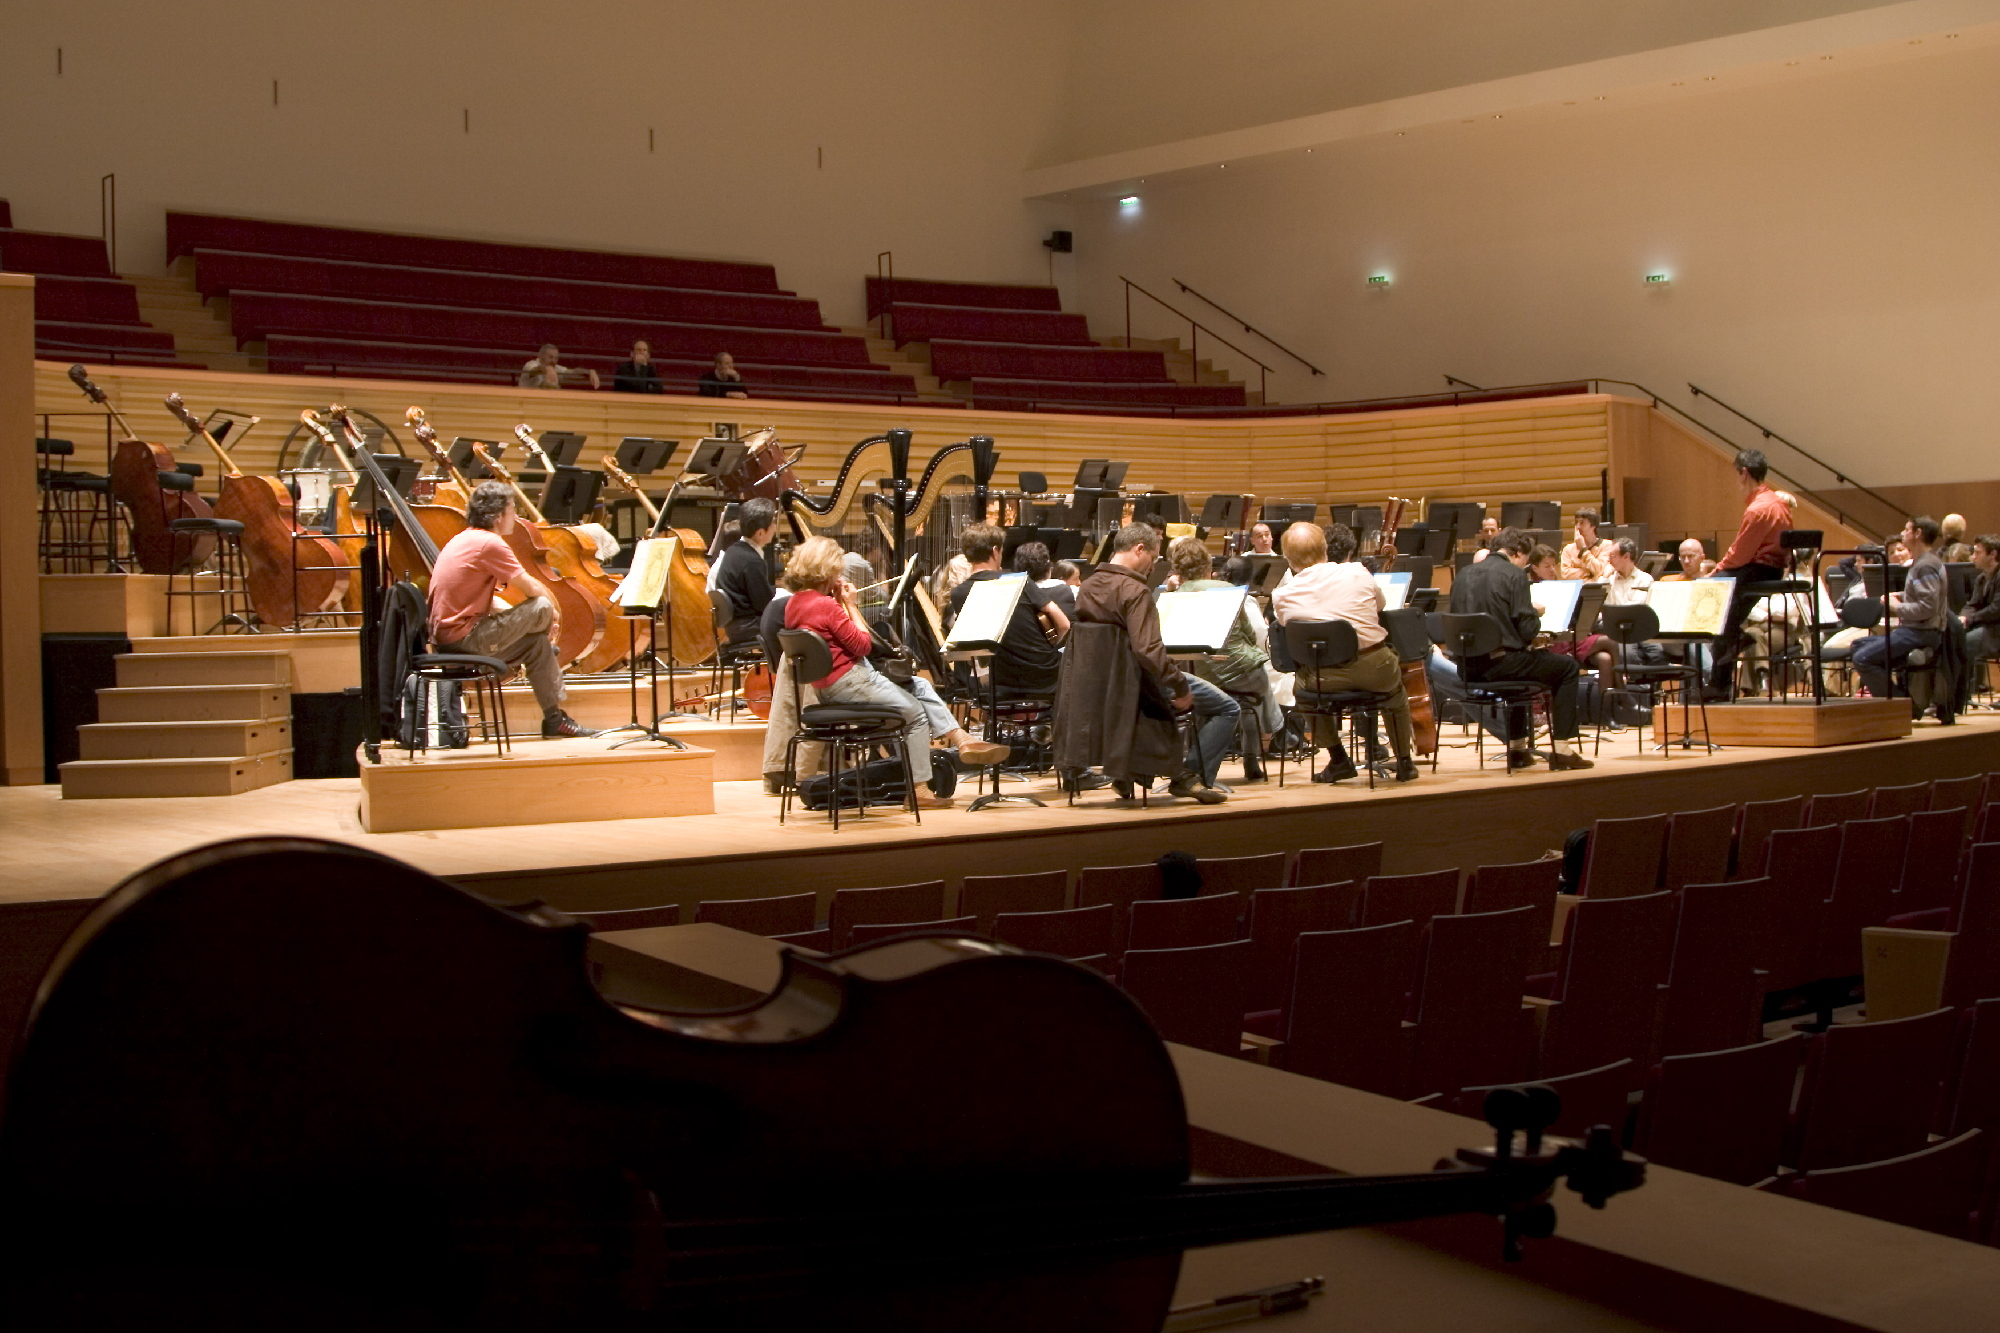 Have a classical time at the Salle Pleyel